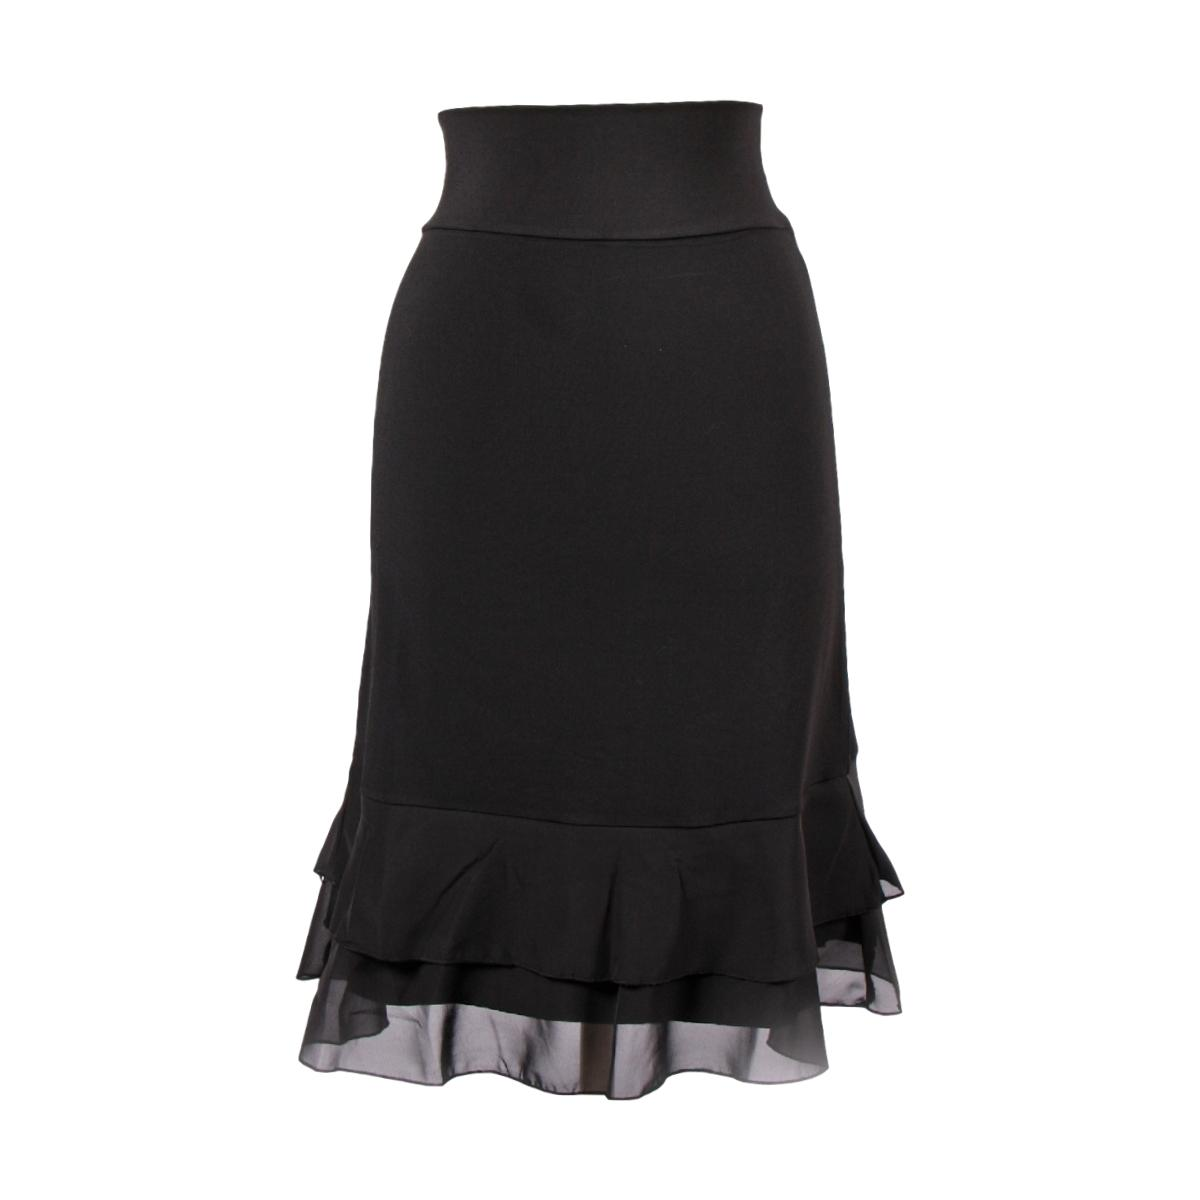 Iris Chiffon Layering Skirt | black, skirt extenders, Peekaboo Chic | Modest Layering Apparel for women